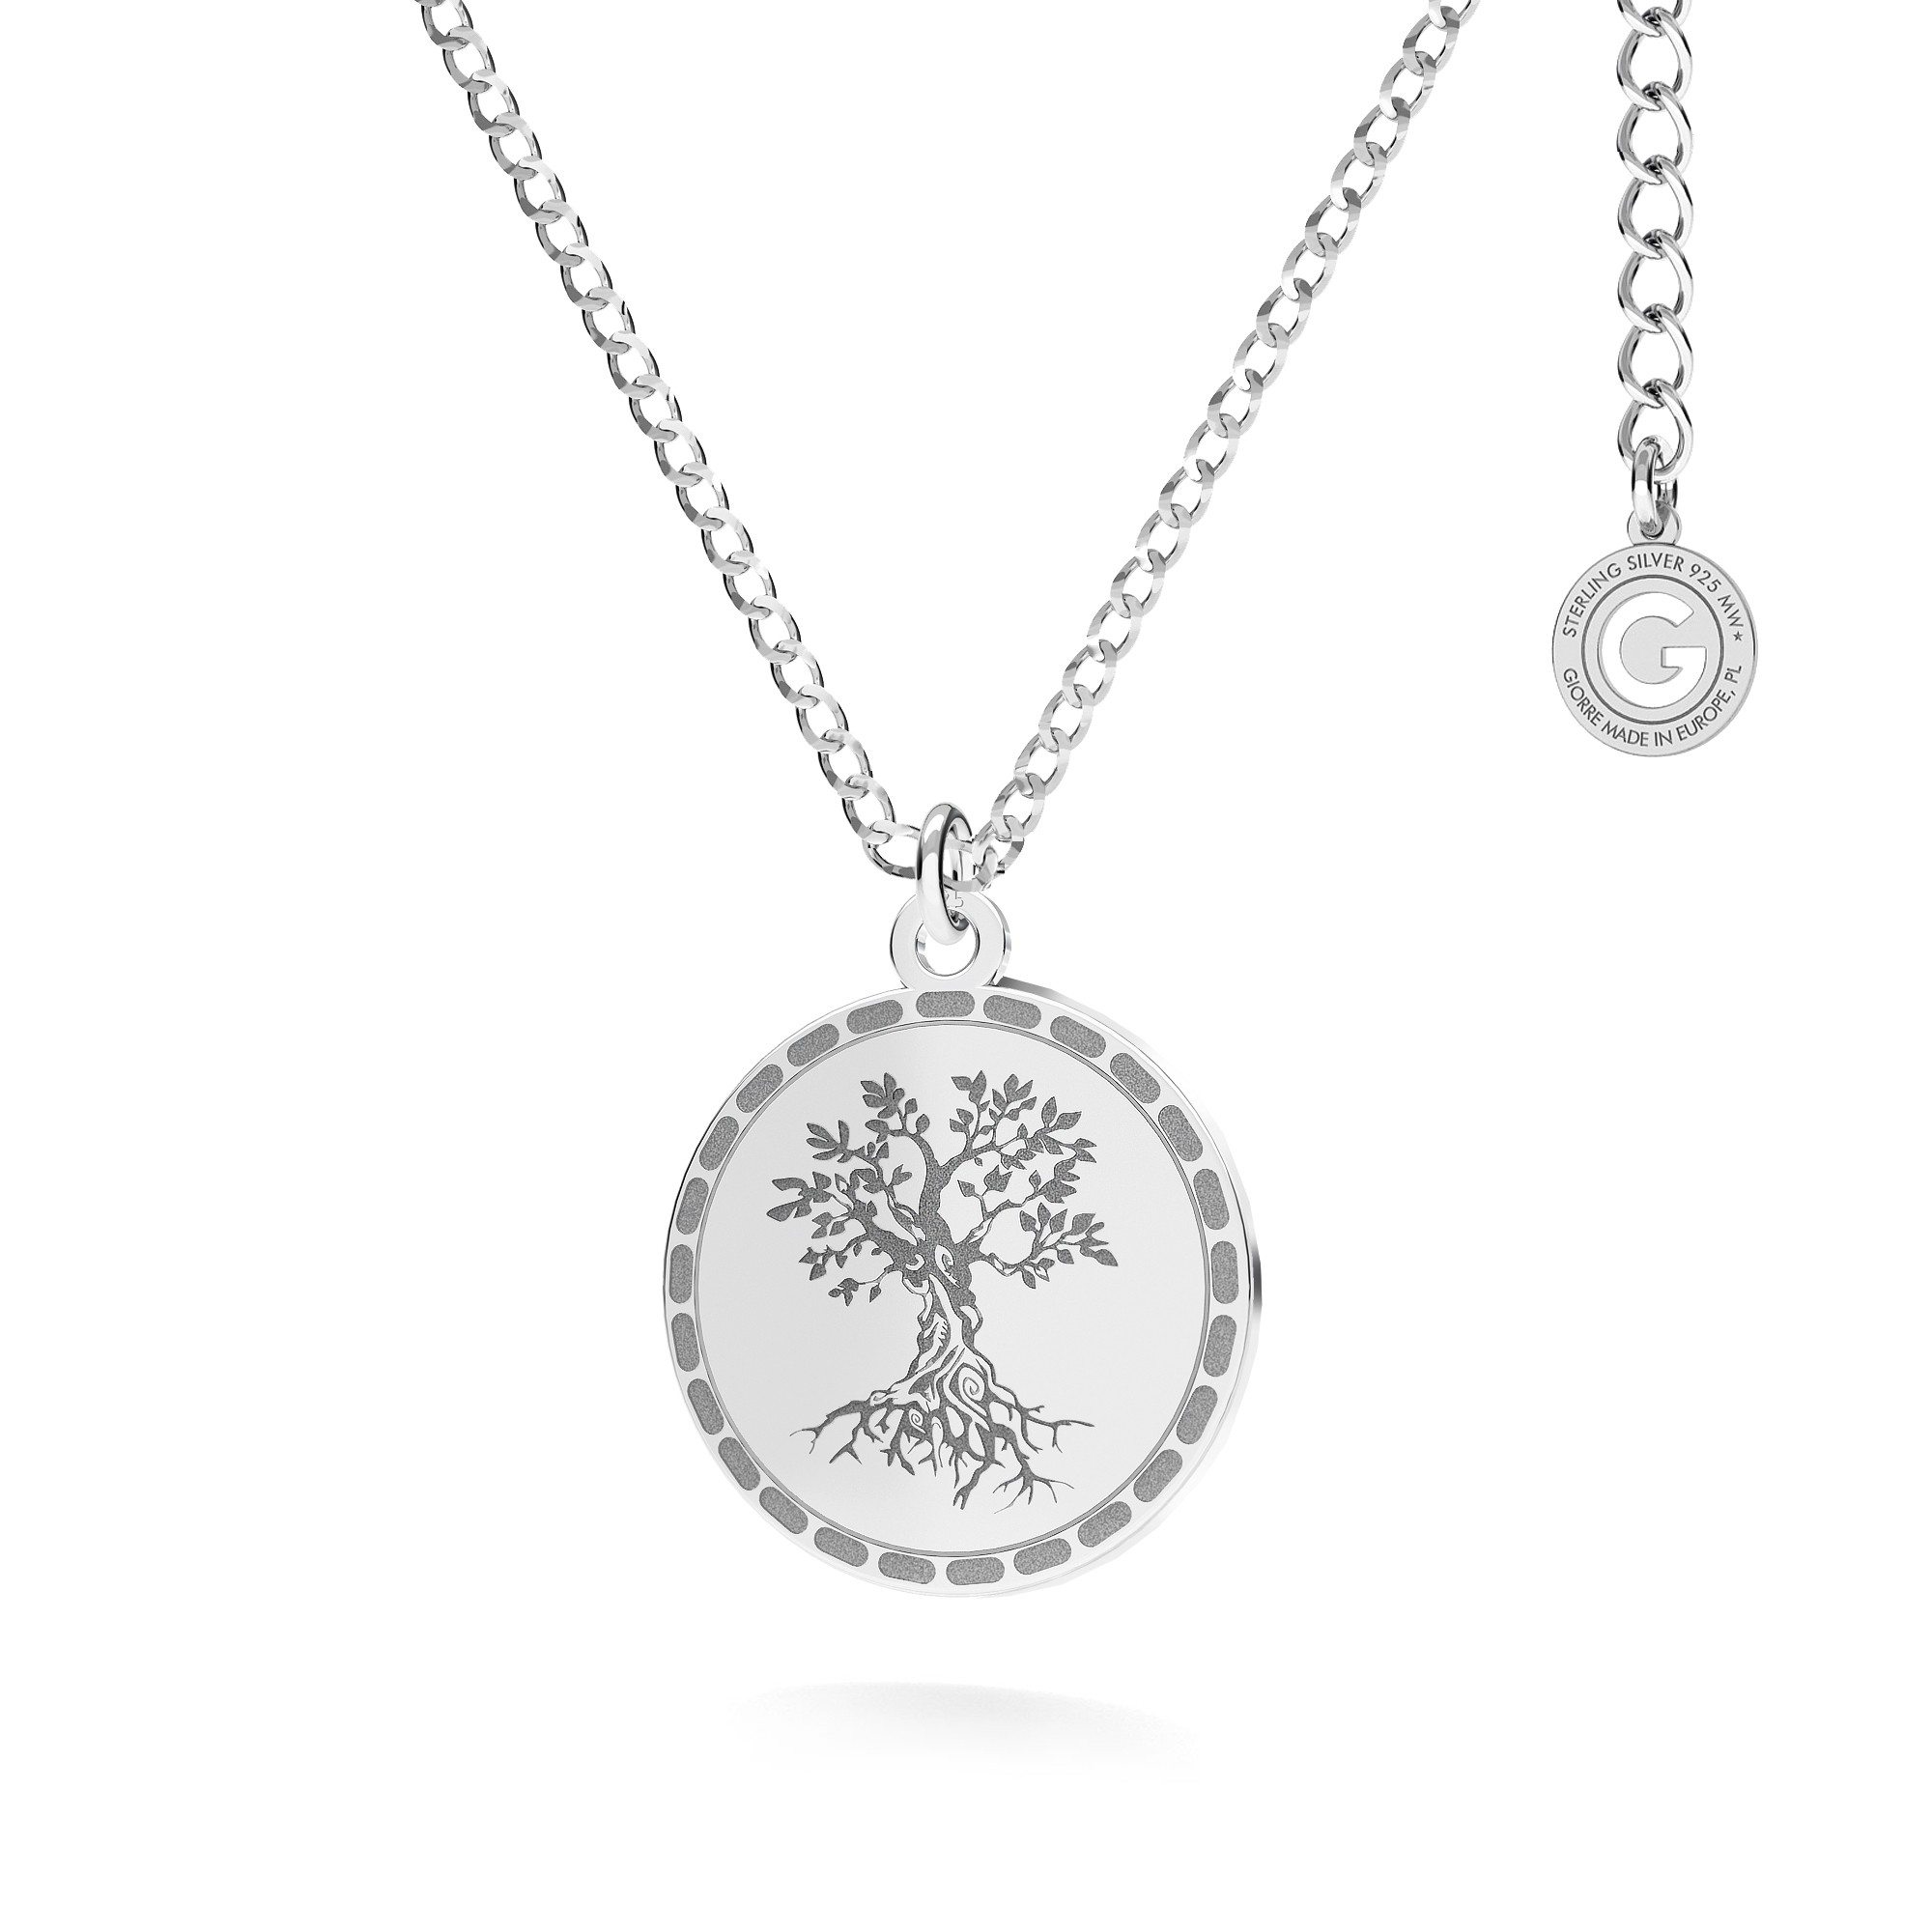 Round curb pendant necklace sterling silver 925